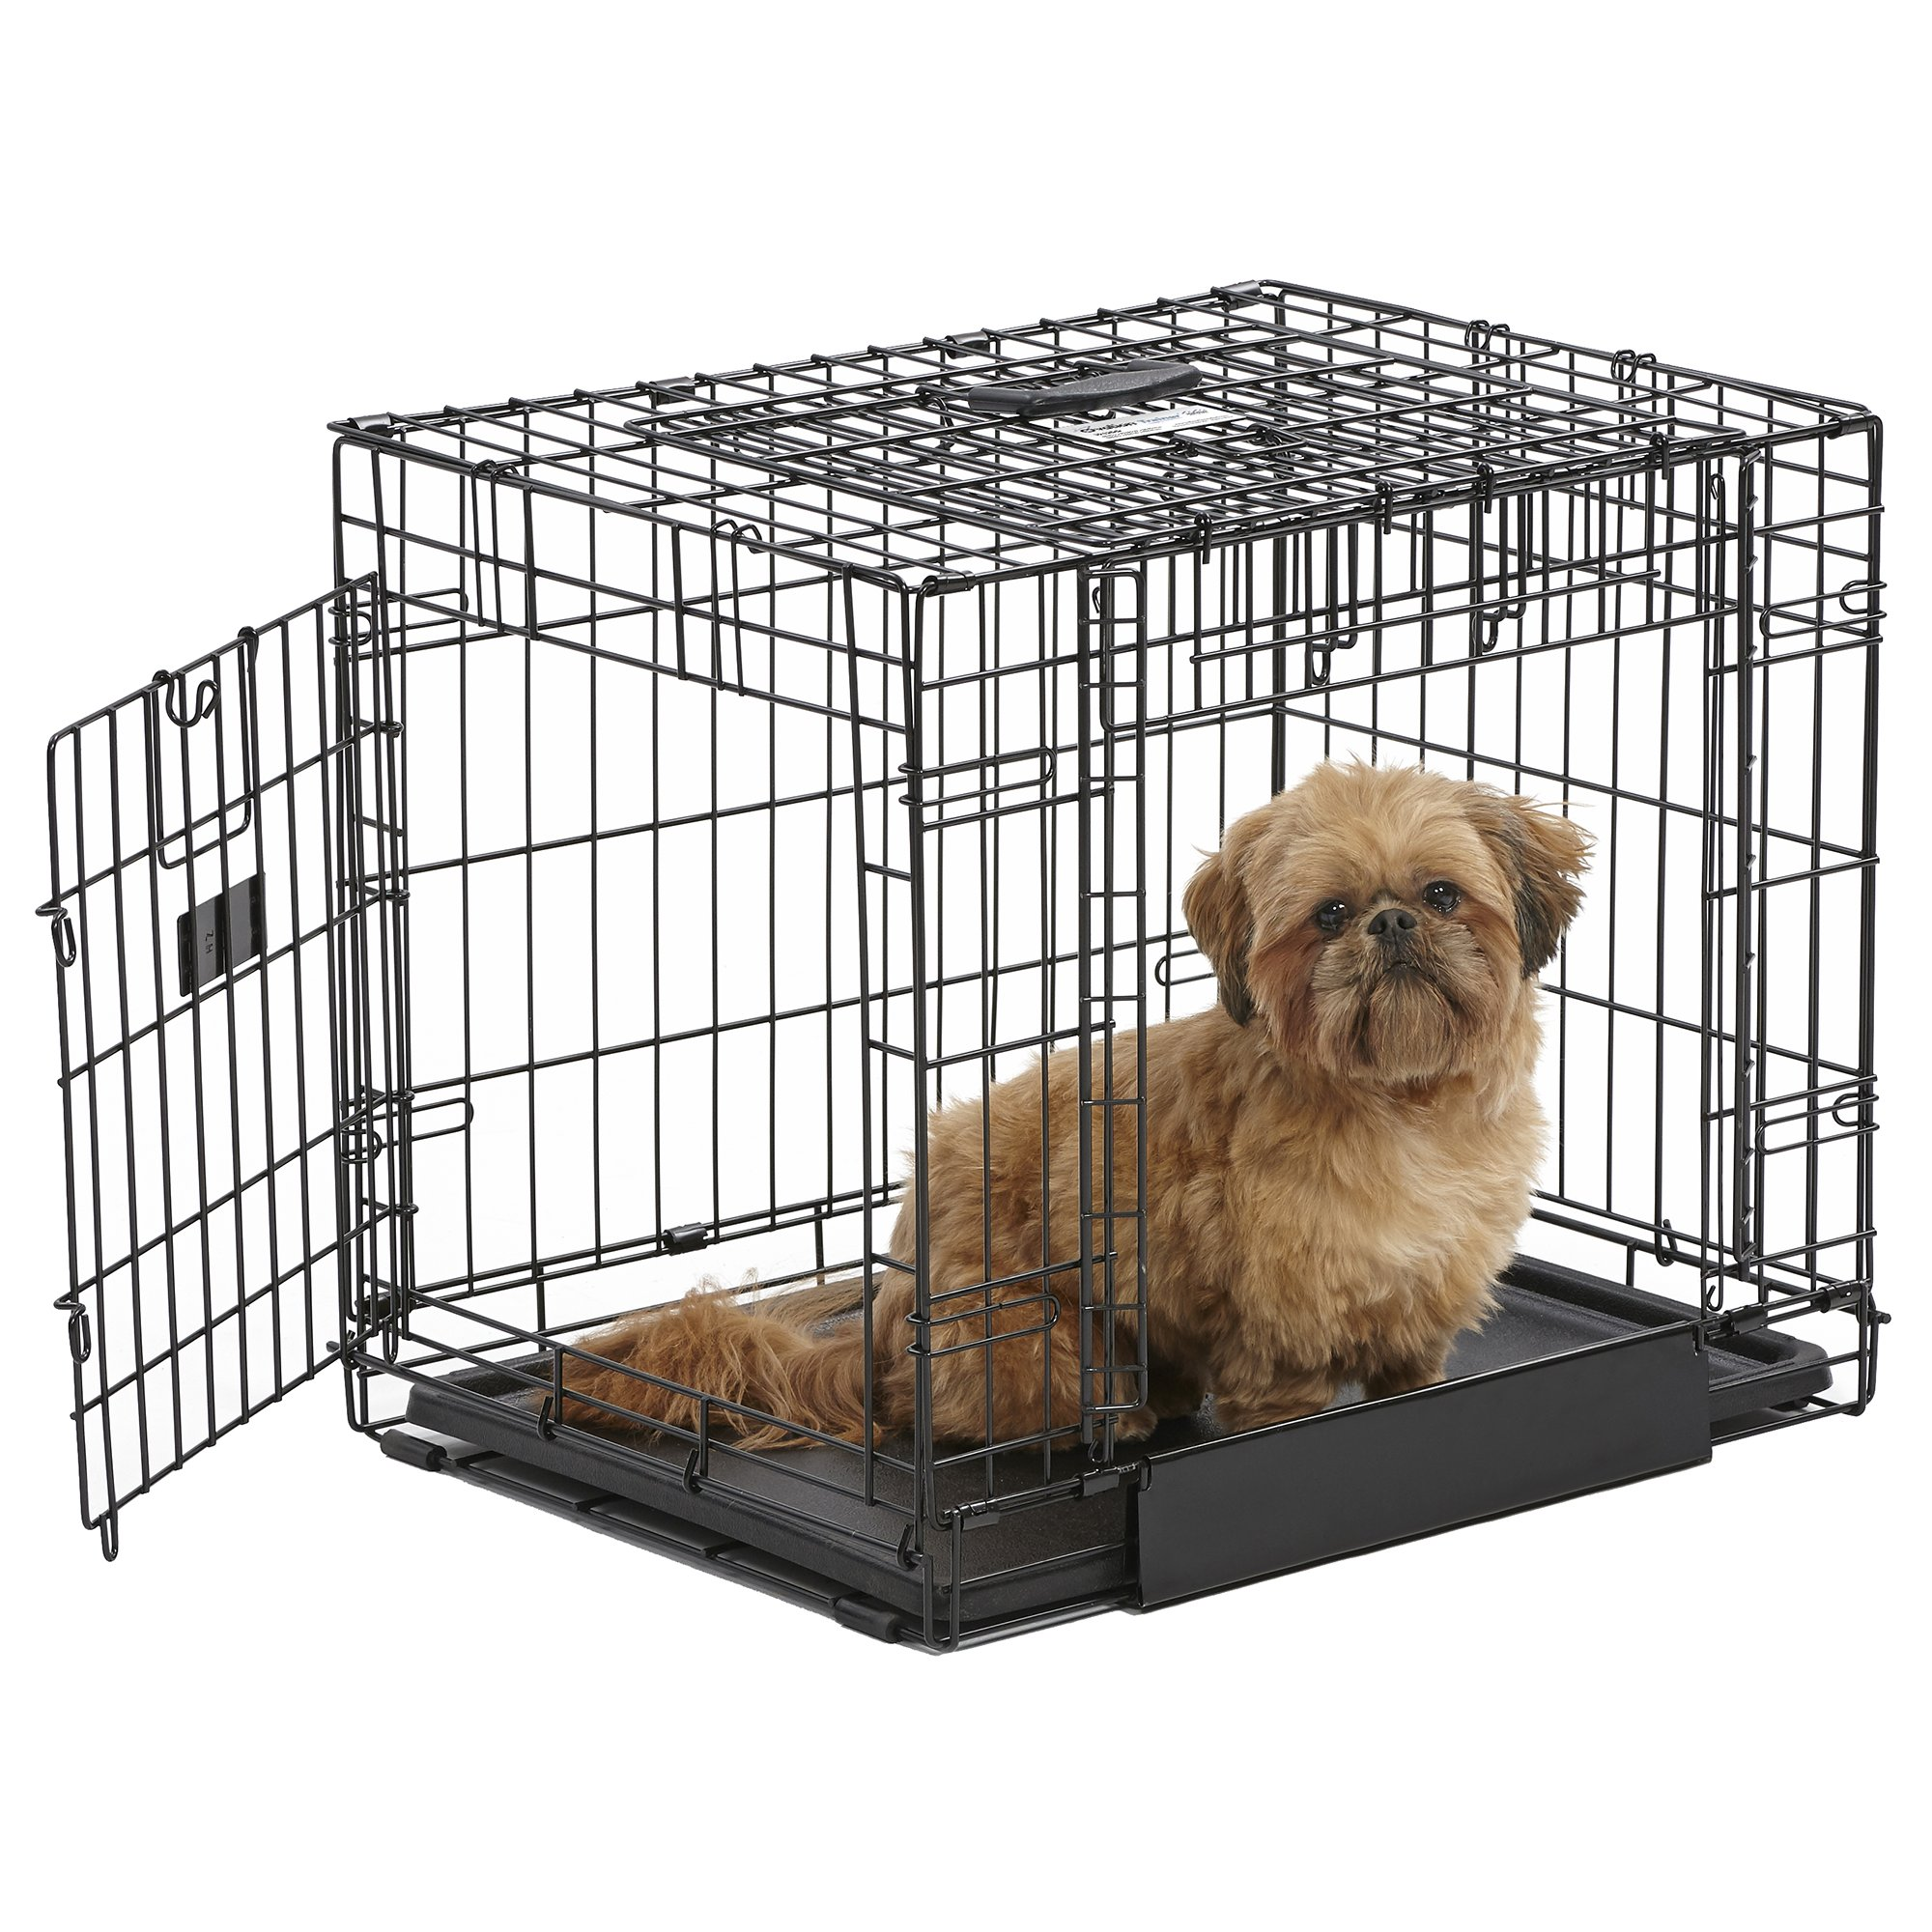 We carry a variety of small to large dog crate covers designed for You & Me and Precision Pet. If you're buying a crate or dog kennel cover for another manufacturer, be sure to measure the outside dimensions to confirm you're purchasing the right size cover.